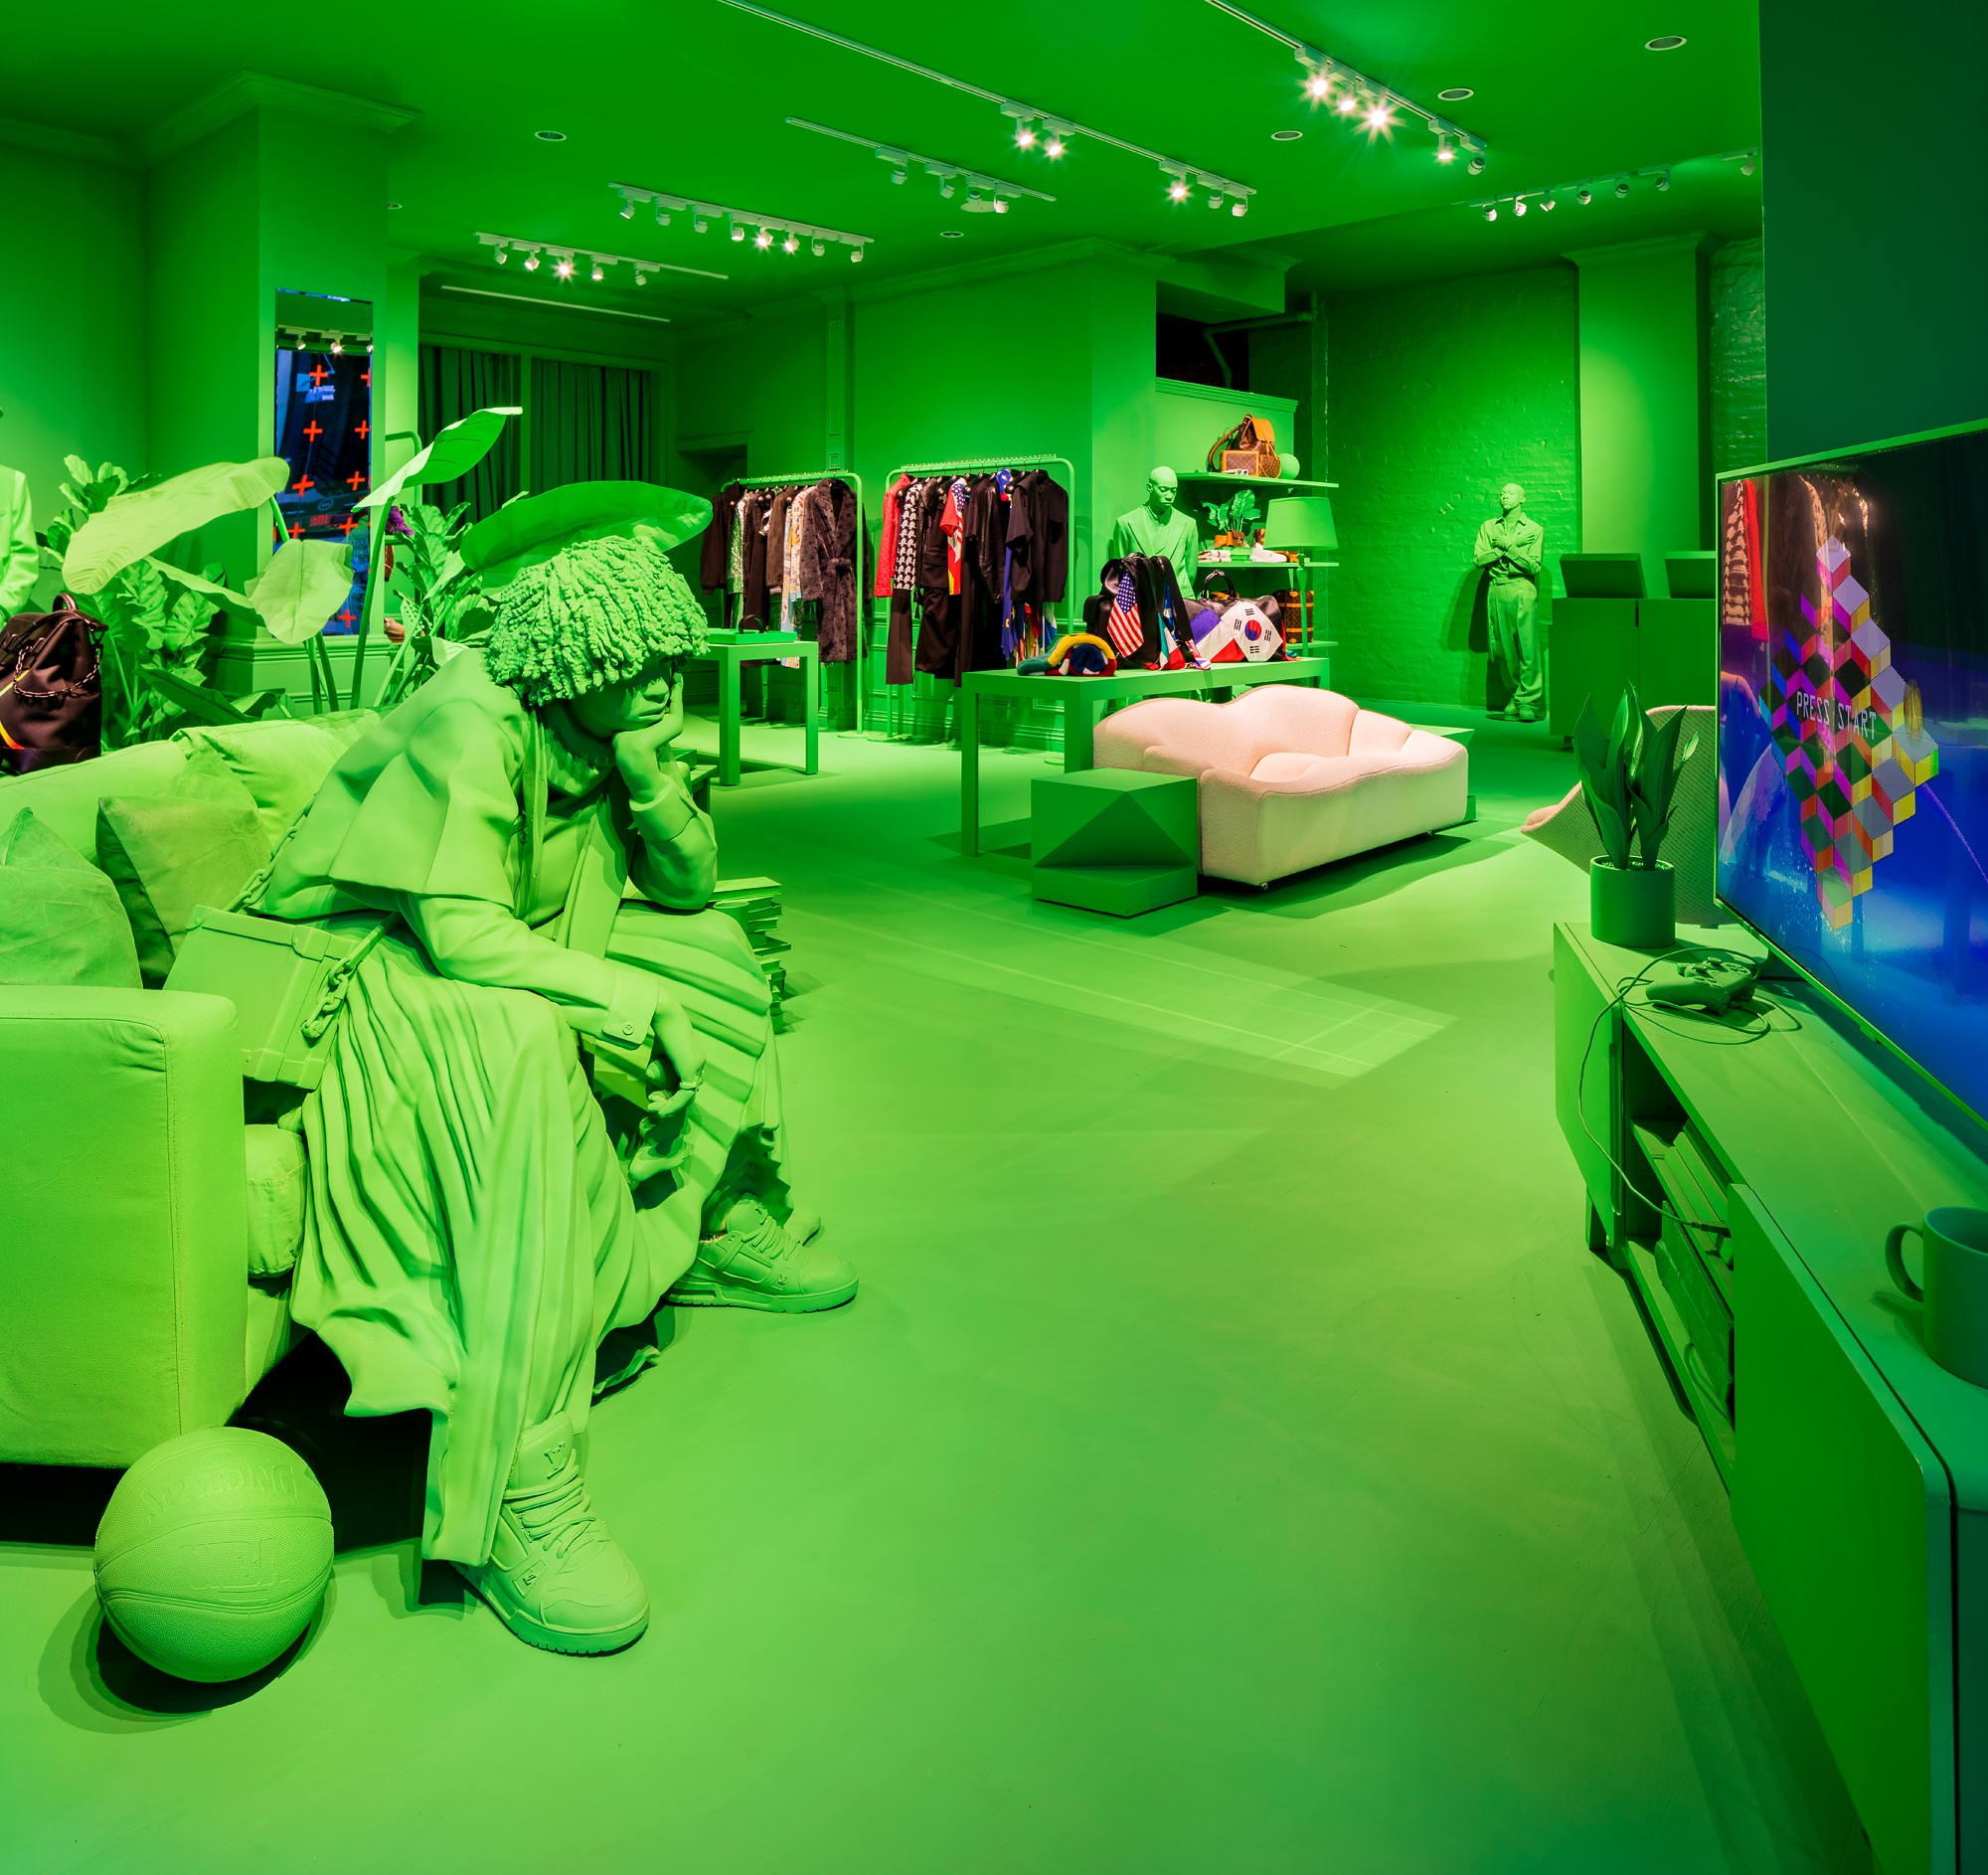 East Orange Focus >> Louis Vuitton Launches Neon Green Men's Pop-up in NYC Lower East Side | The Impression